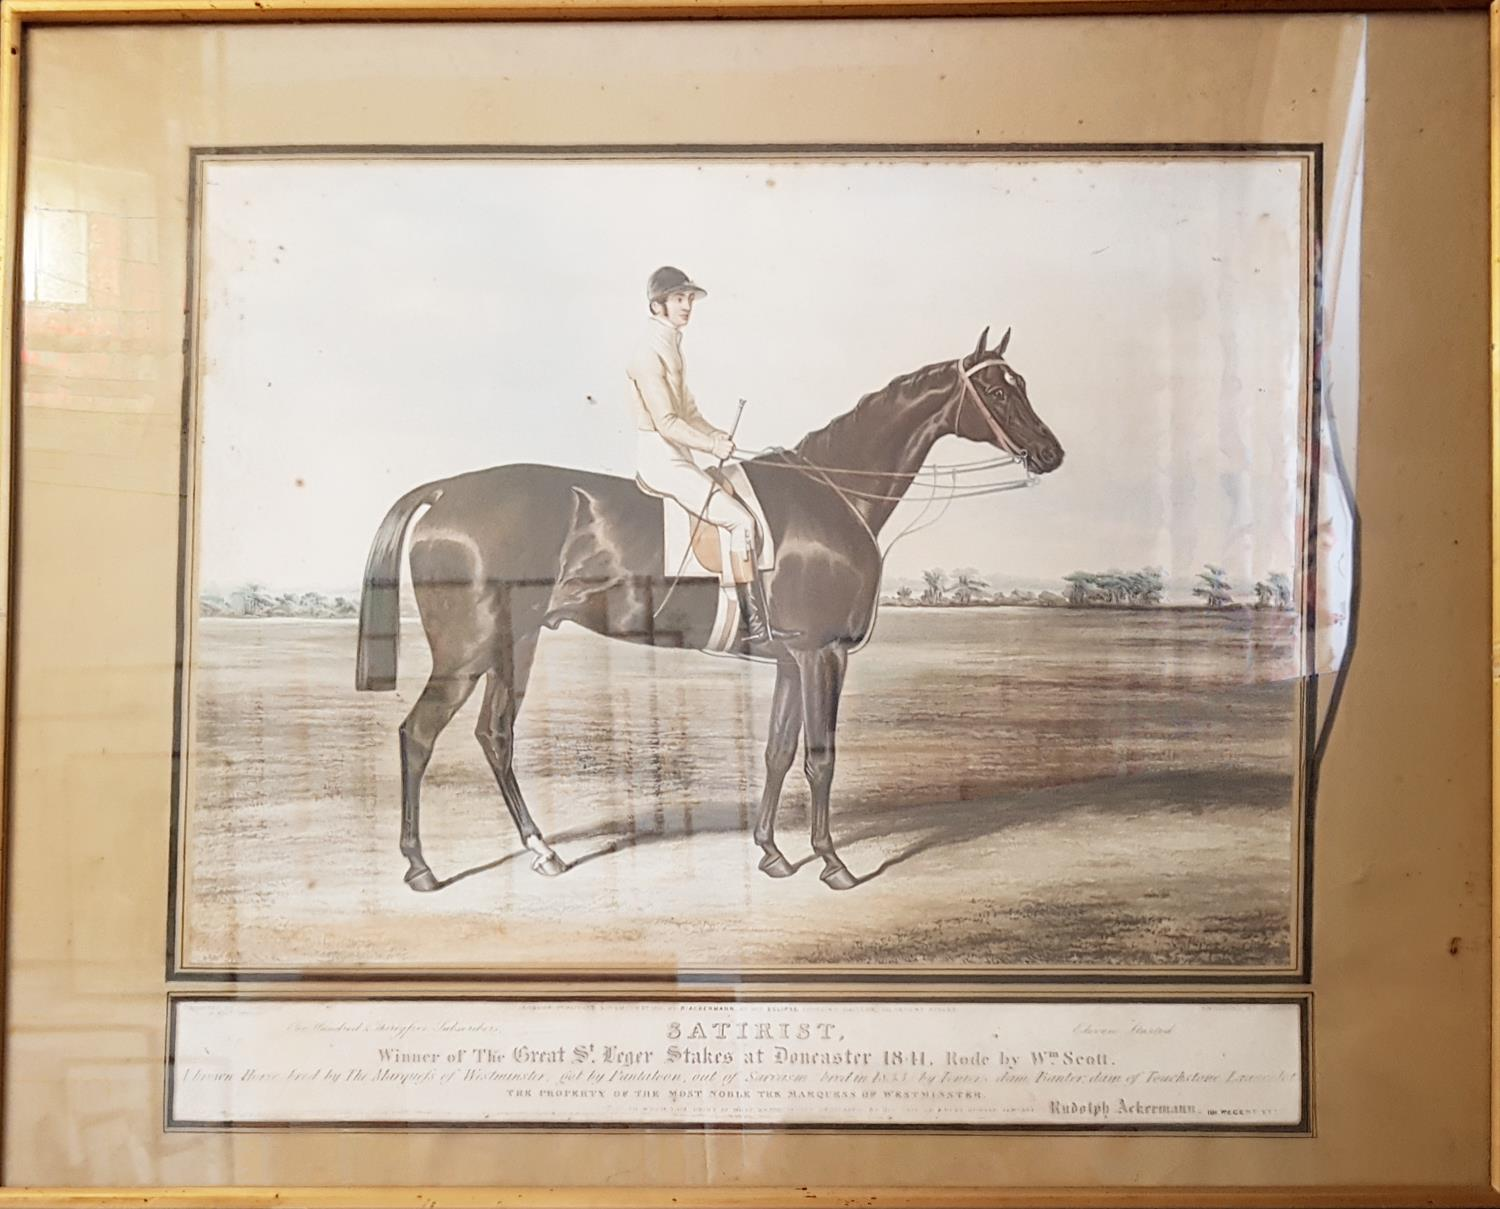 Lot 36 - Two 19th Century Ackerman Coloured Prints of Racehorses. Coronation and Satirist. In original